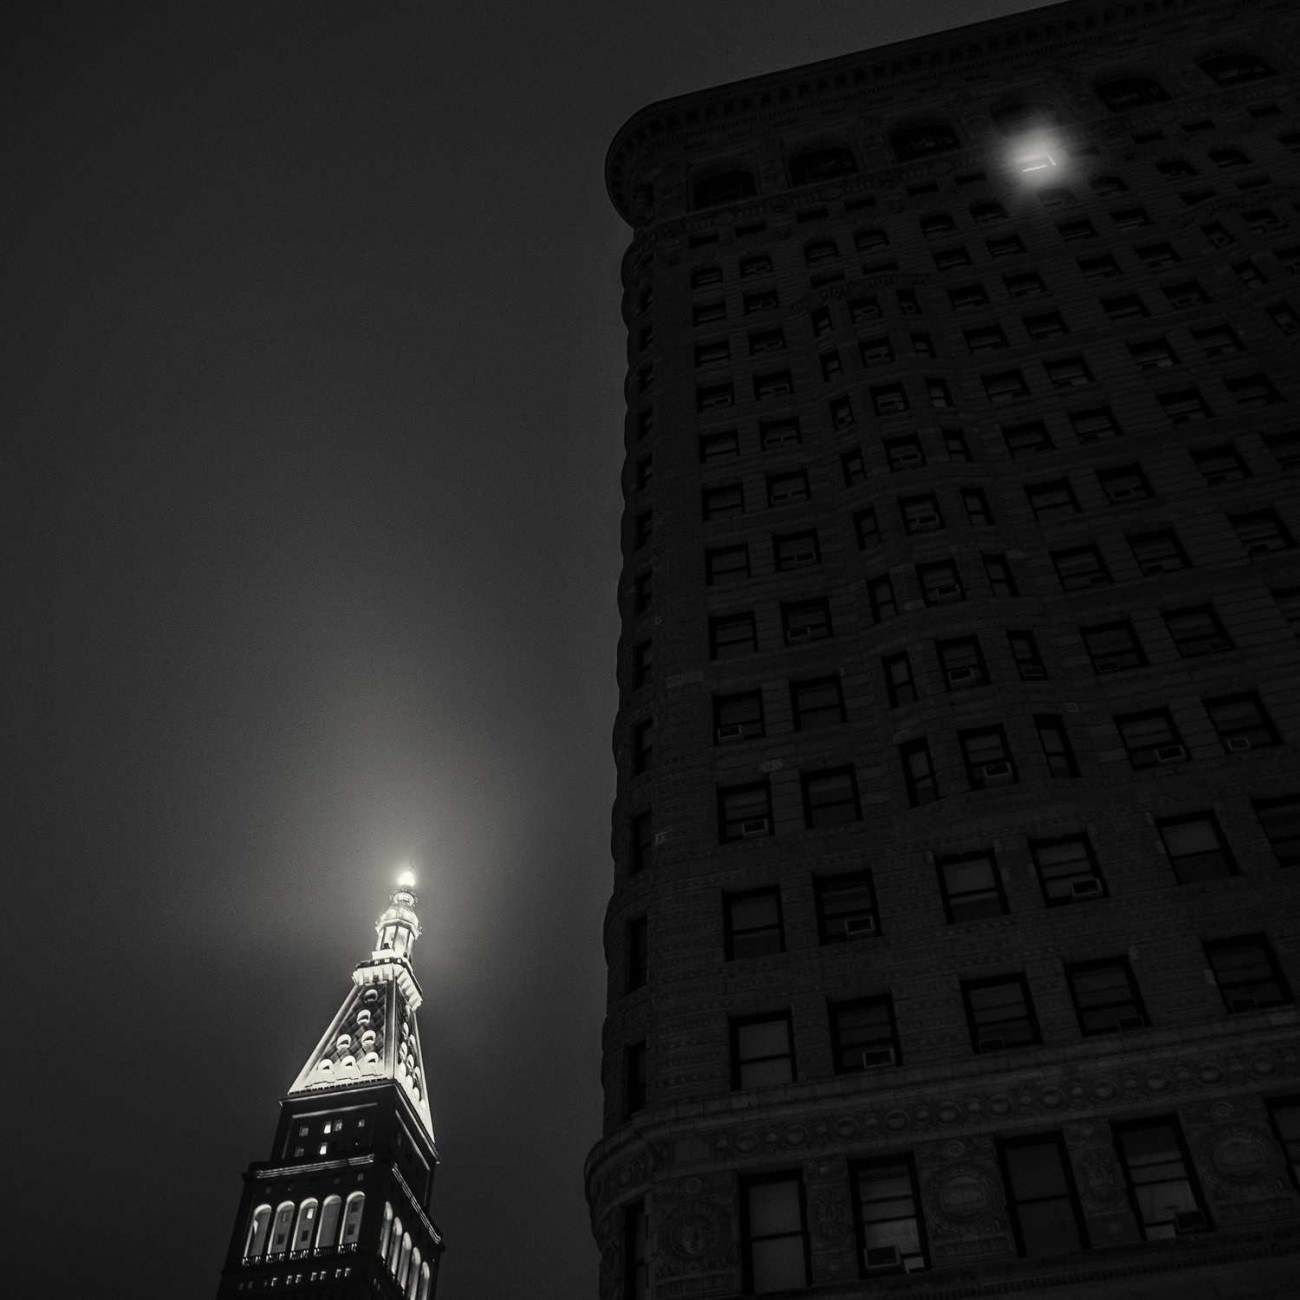 Late night window in the Flatiron, New York, NY 2015